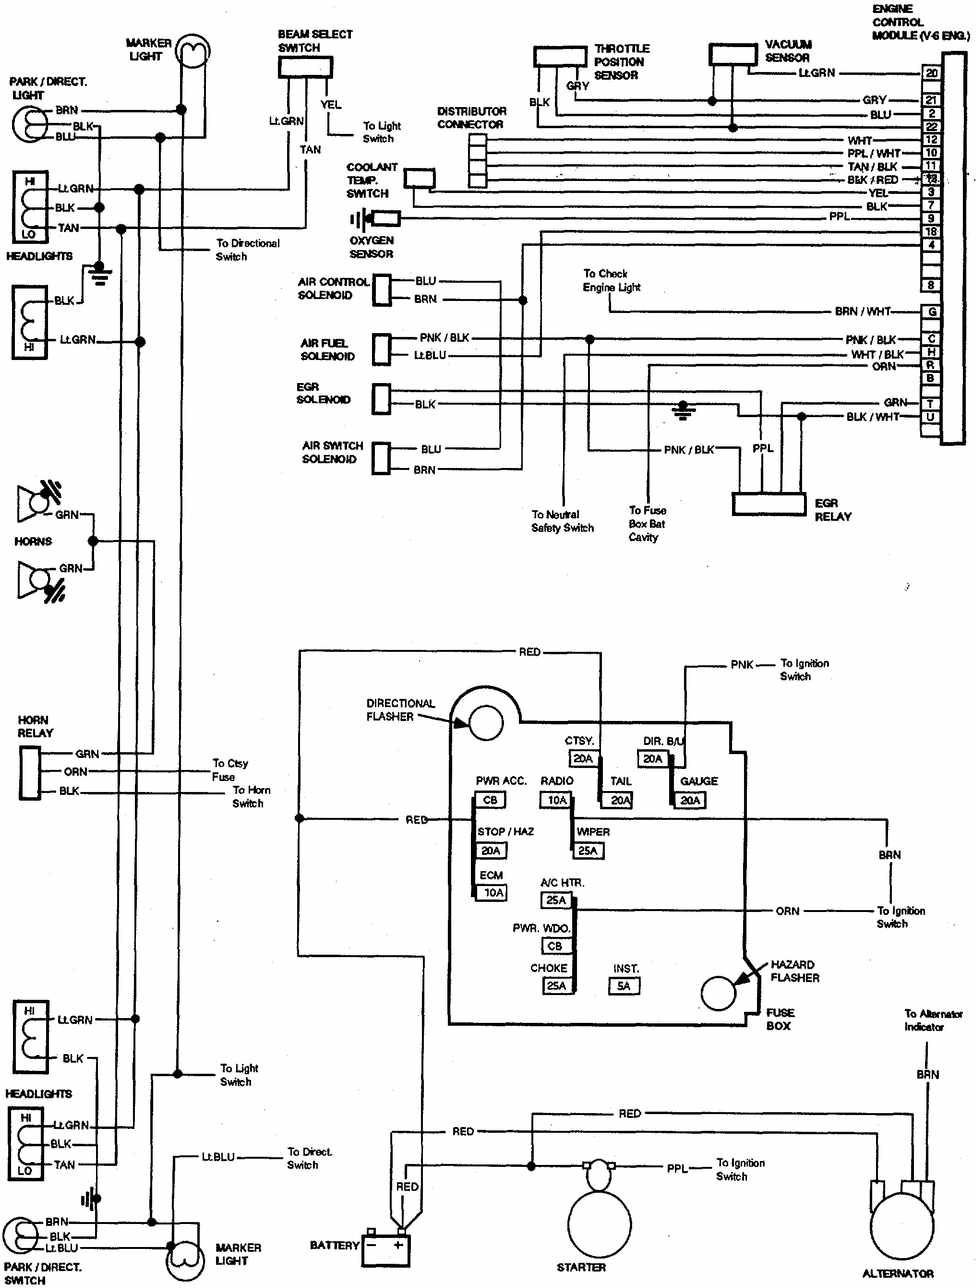 Herein we can see the 1981-1987 Chevrolet V8 Trucks electrical wiring  diagram. Description from diagram… | Chevy trucks, 1984 chevy truck, Electrical  wiring diagramPinterest